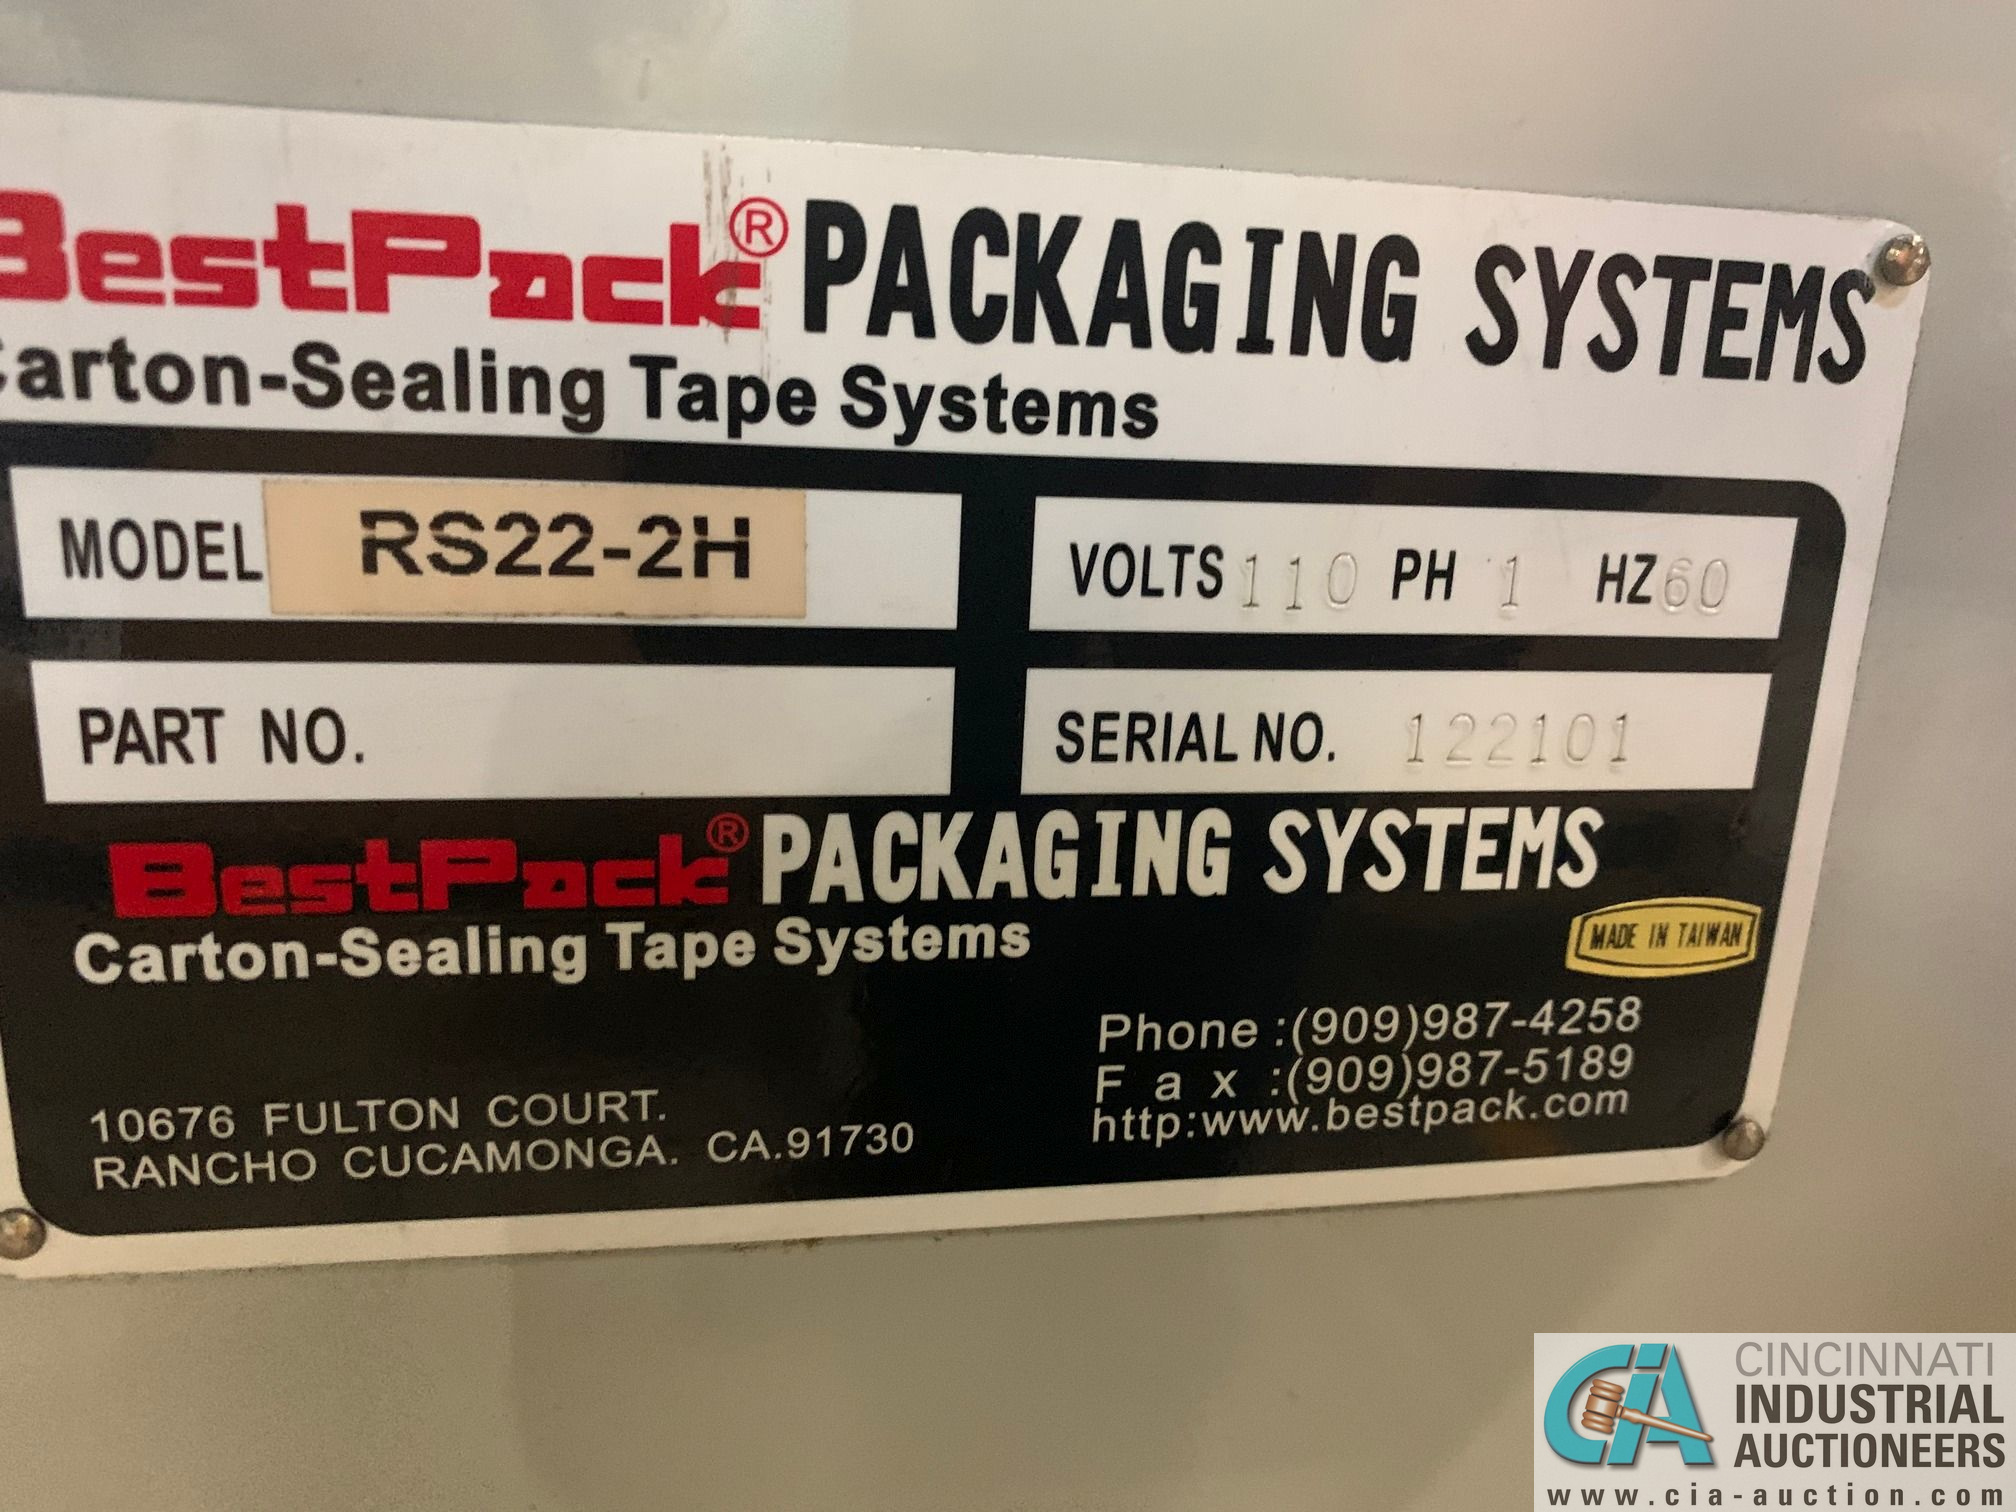 BEST PACK MODEL RS22-3H BOX TAPER; S/N 122101 (APPROX. 2013) - Image 4 of 7